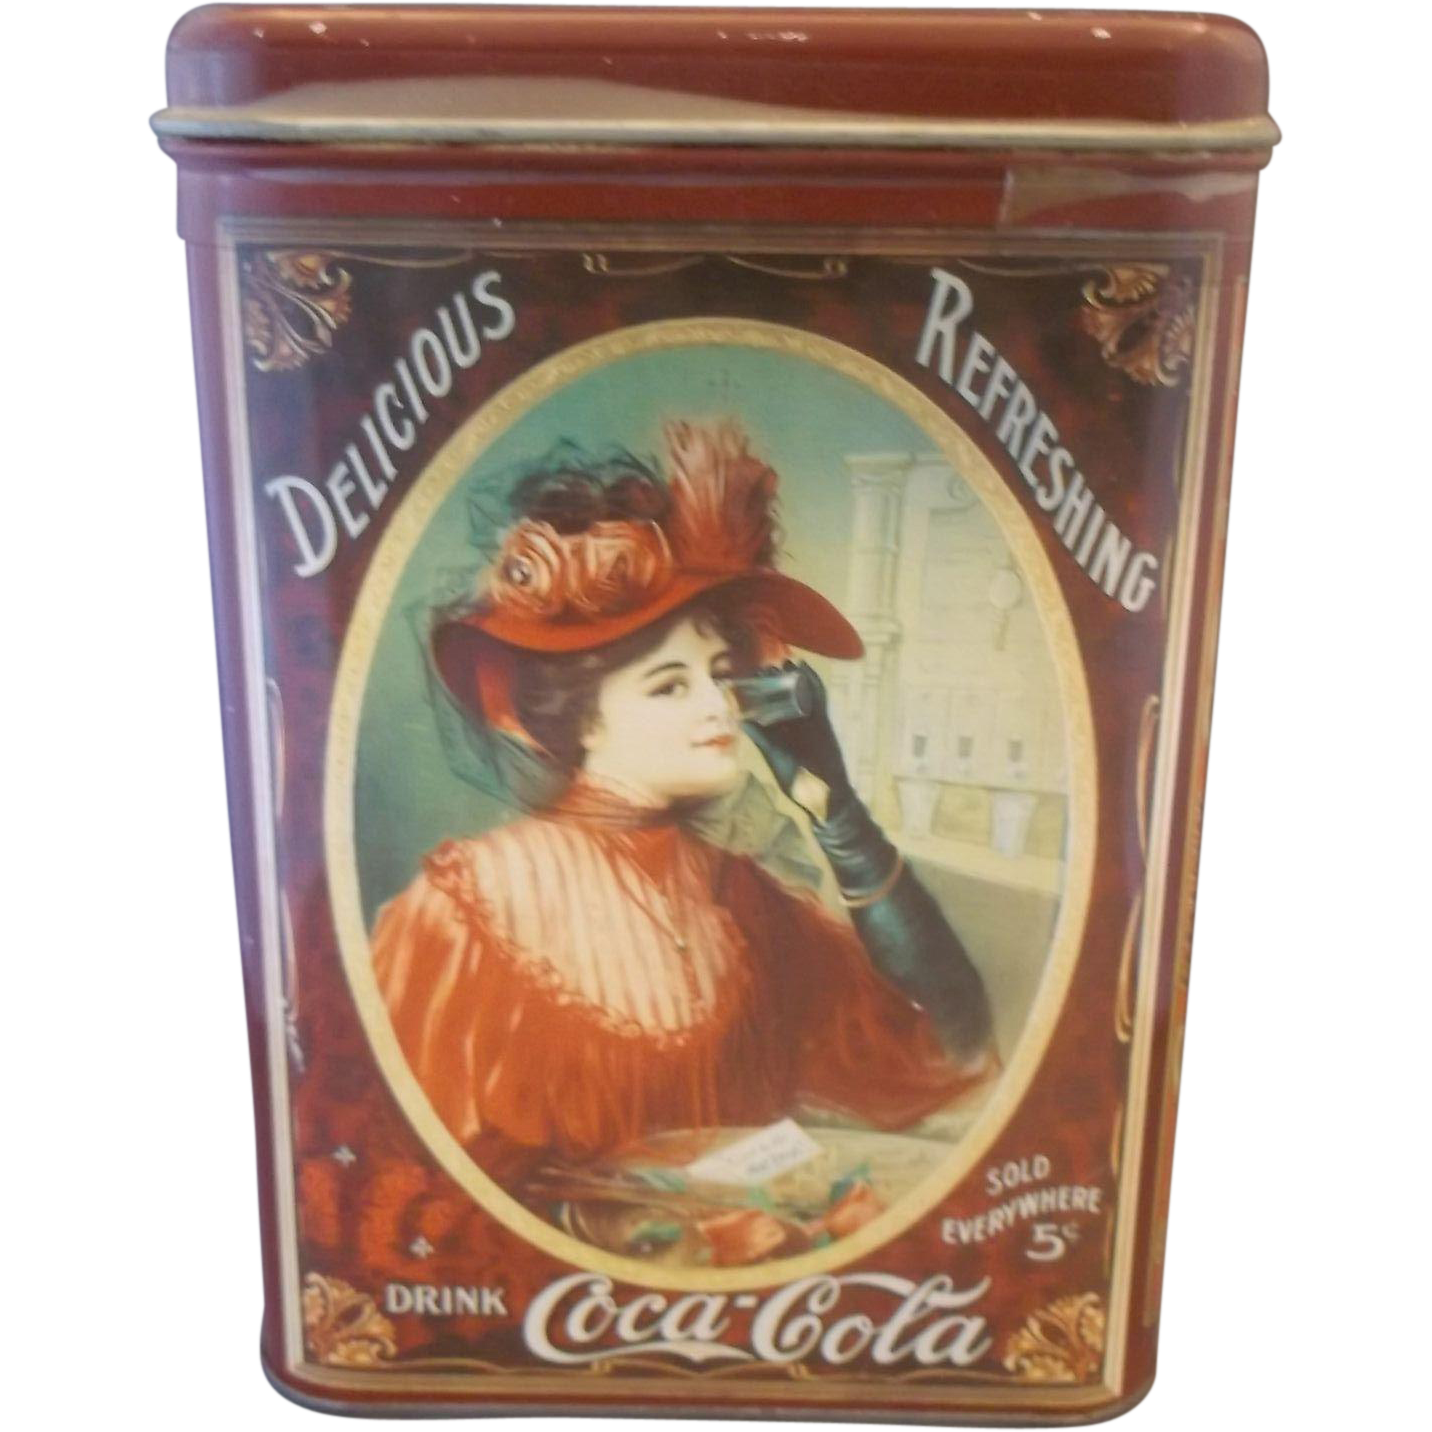 Drink Coca Cola Delicious Refreshing Tin Metal Box